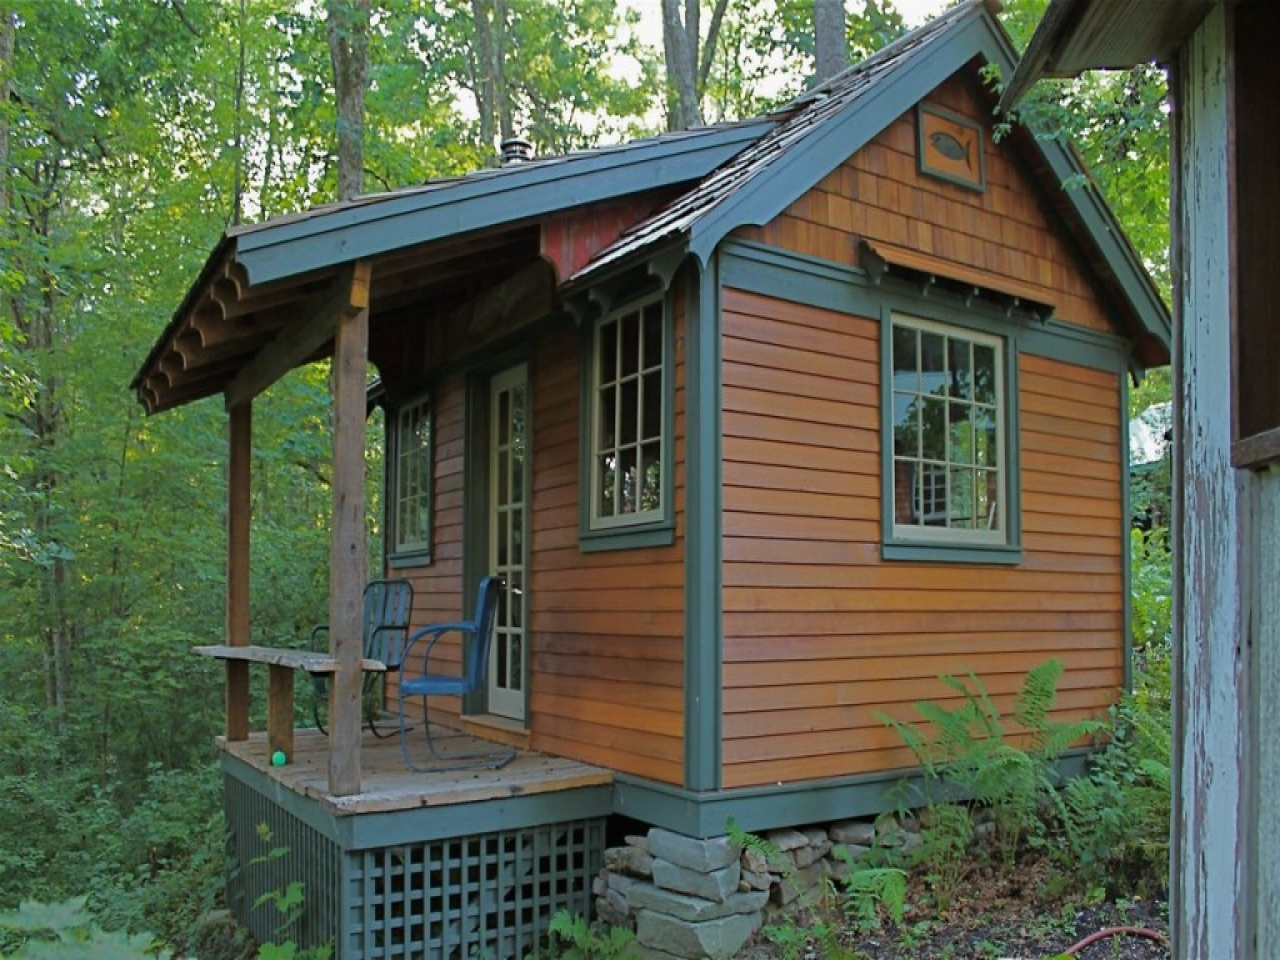 Do It Yourself Home Design: Inside Tiny Houses Small Cabins Tiny Houses, Build It